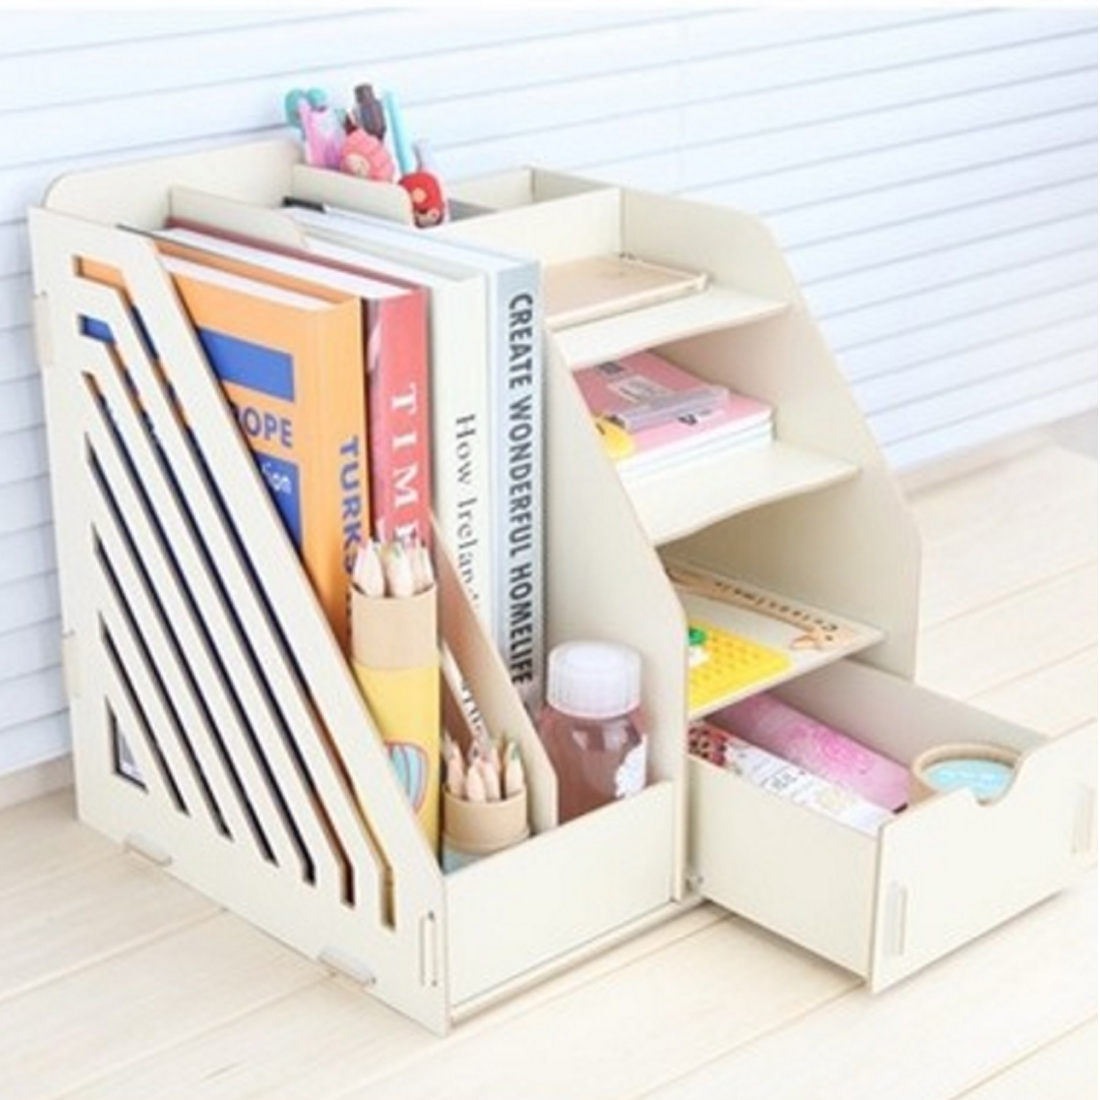 ITECHOR Office Sundries Wood Desk Organizer With Drawer Expandable Mail Sorter Desktop Stationary Organizer Storage Bin